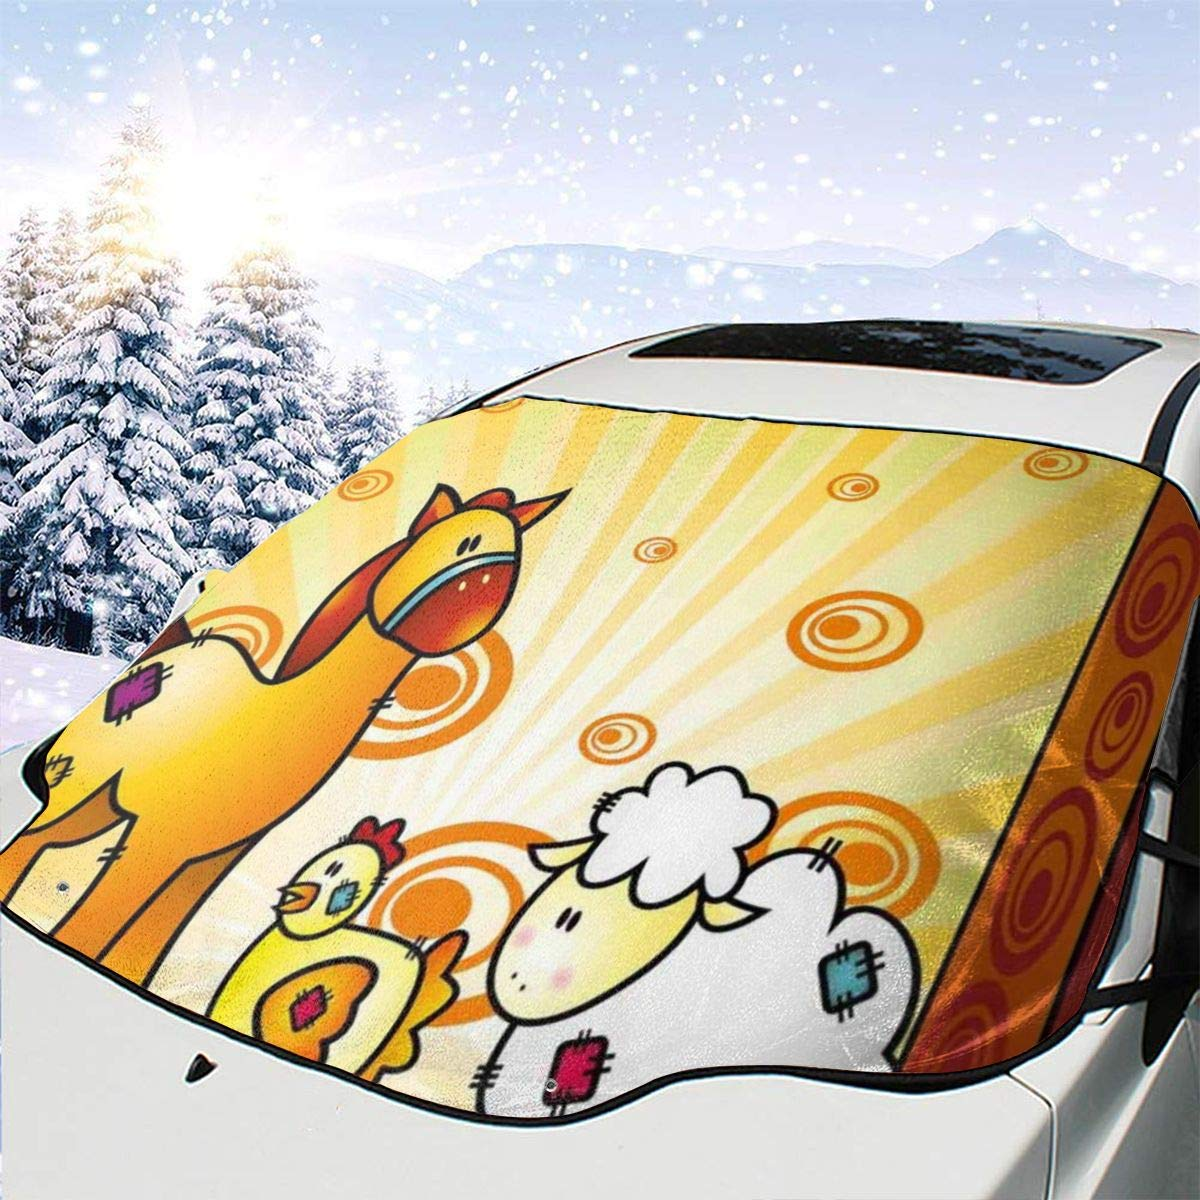 Car Front Window Windshield Snow Cover Chicken Fresno Mall SEAL limited product Animal Sh Friend